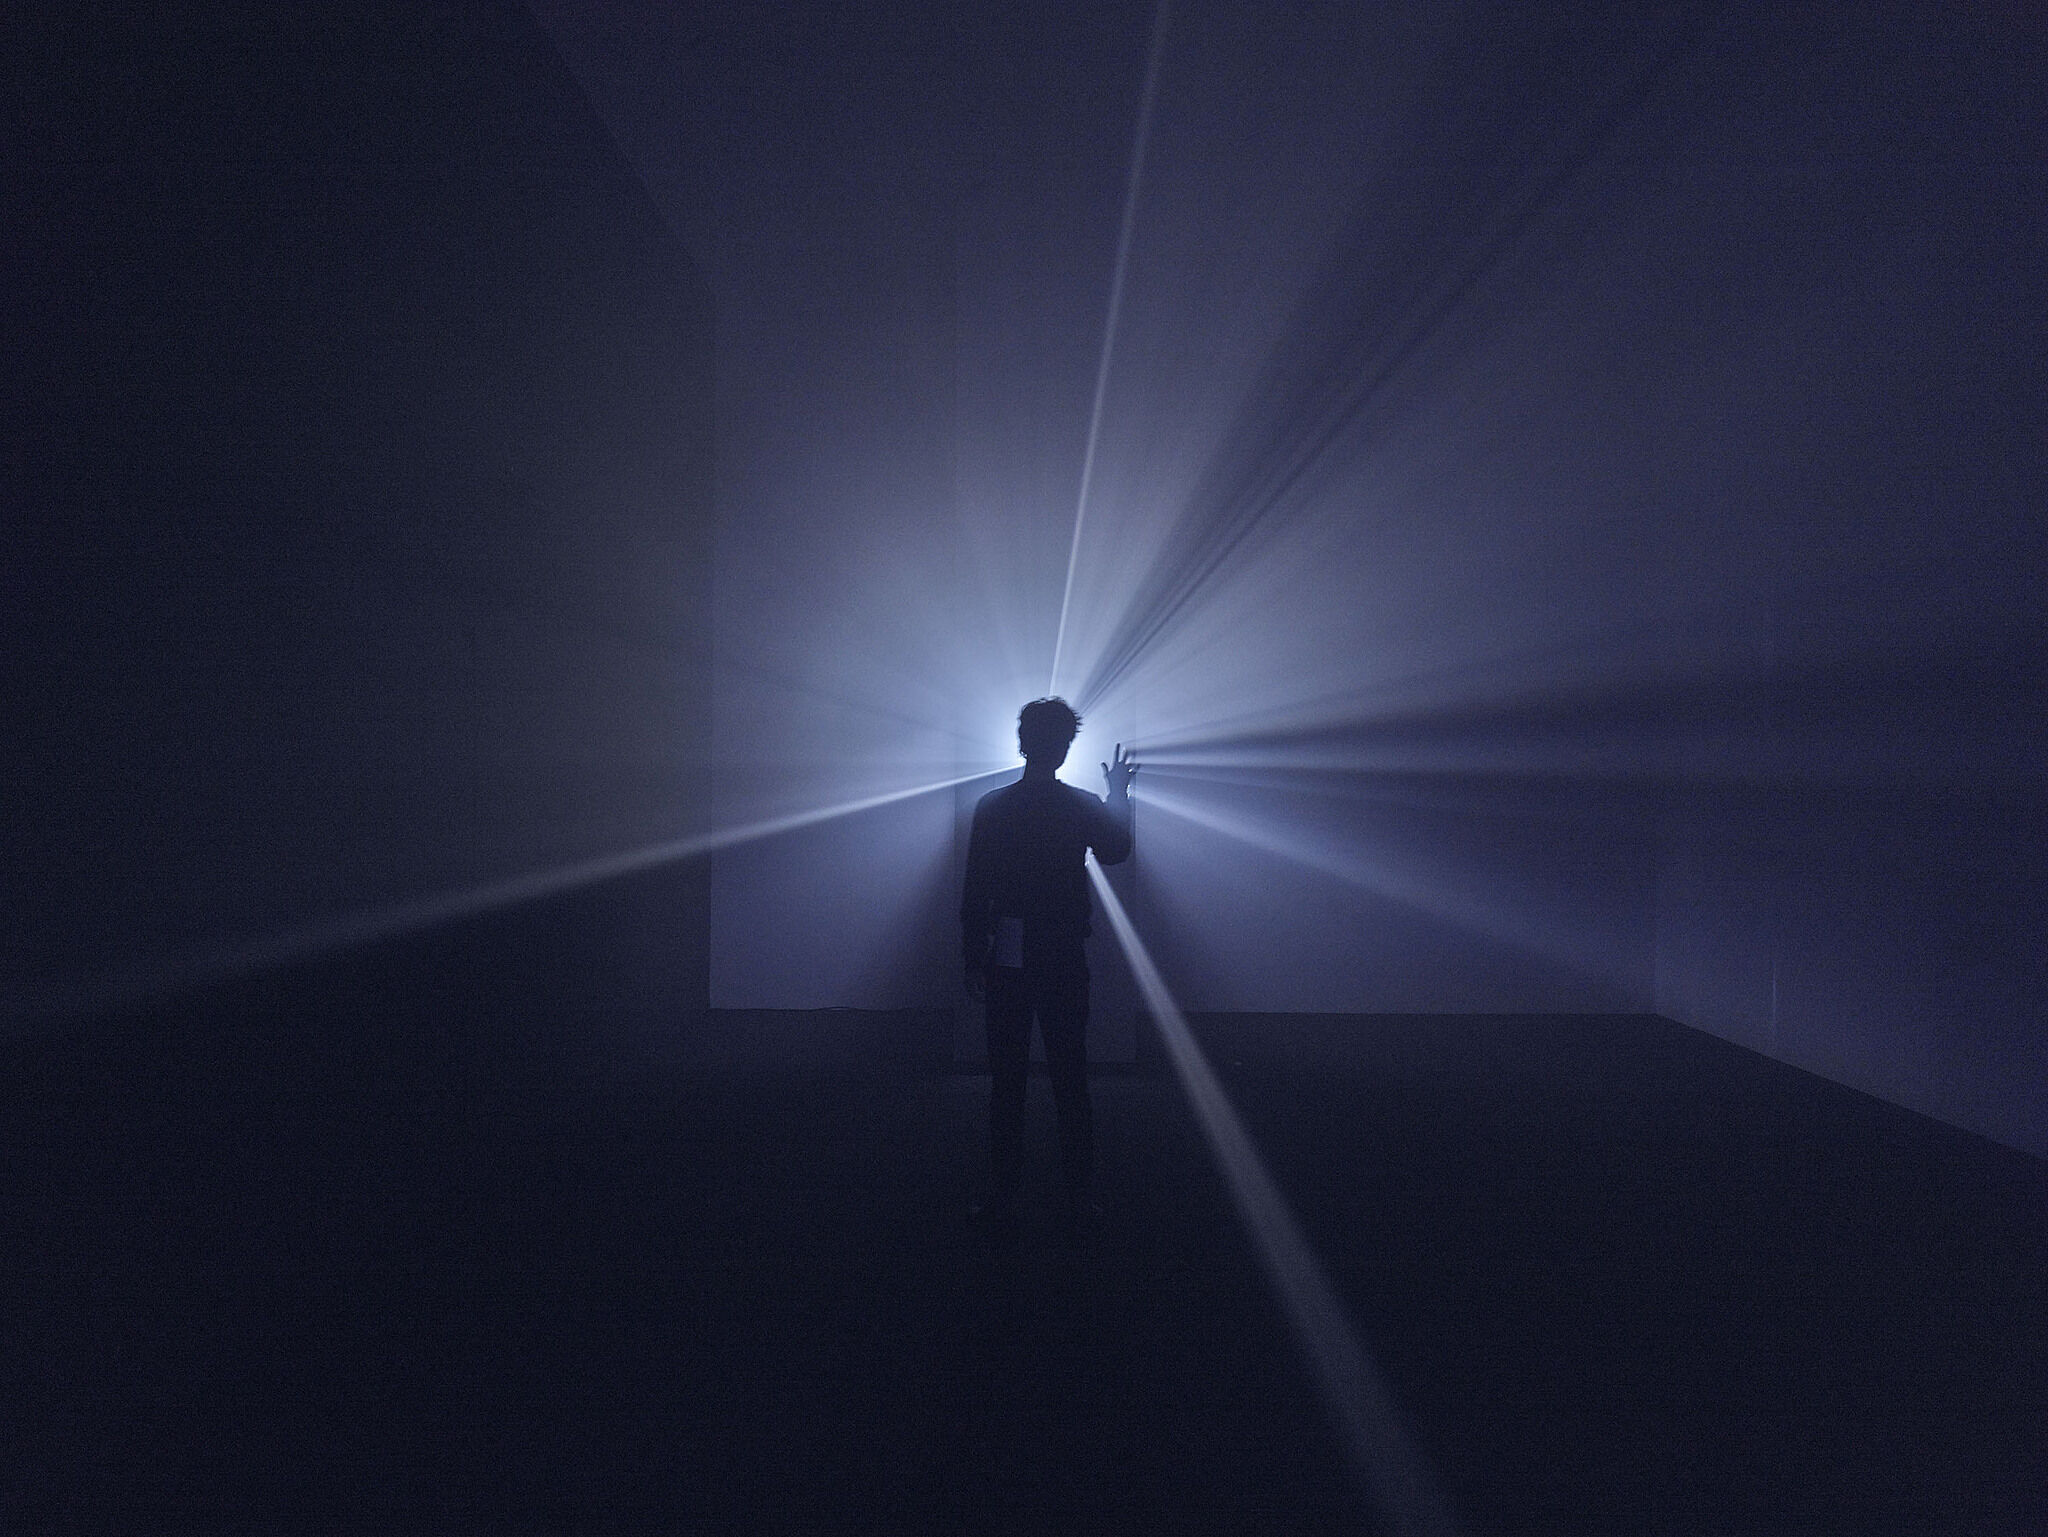 A man stands in front of a film projector diffusing a beam of light.